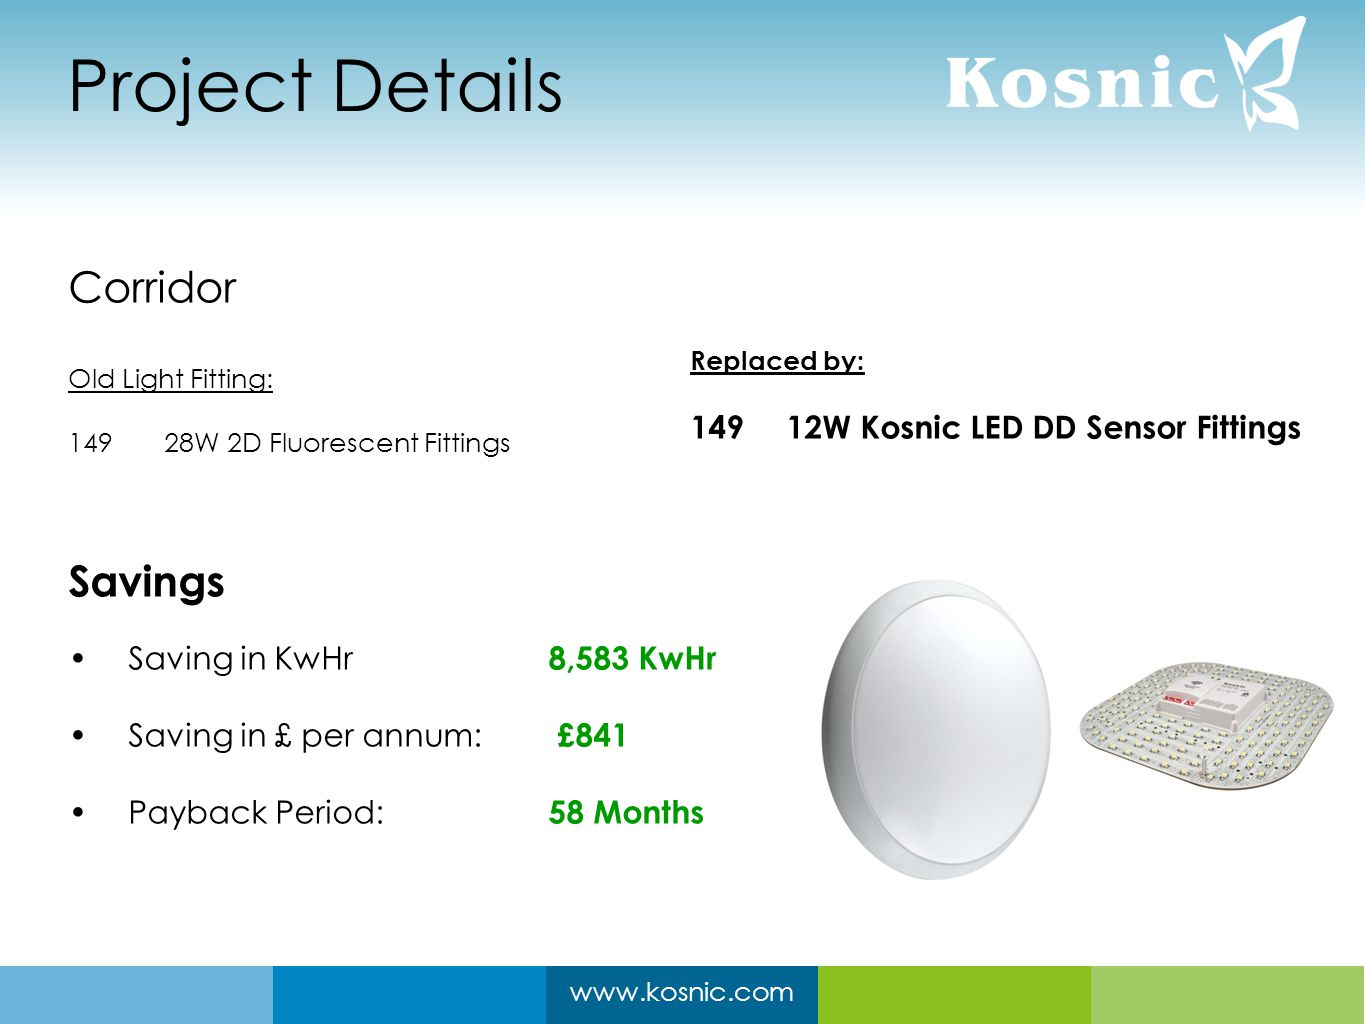 www.kosnic.com Project Details Corridor Old Light Fitting: 14928W 2D Fluorescent Fittings Savings Saving in KwHr 8,583 KwHr Saving in £ per annum: £841 Payback Period: 58 Months Replaced by: 14912W Kosnic LED DD Sensor Fittings